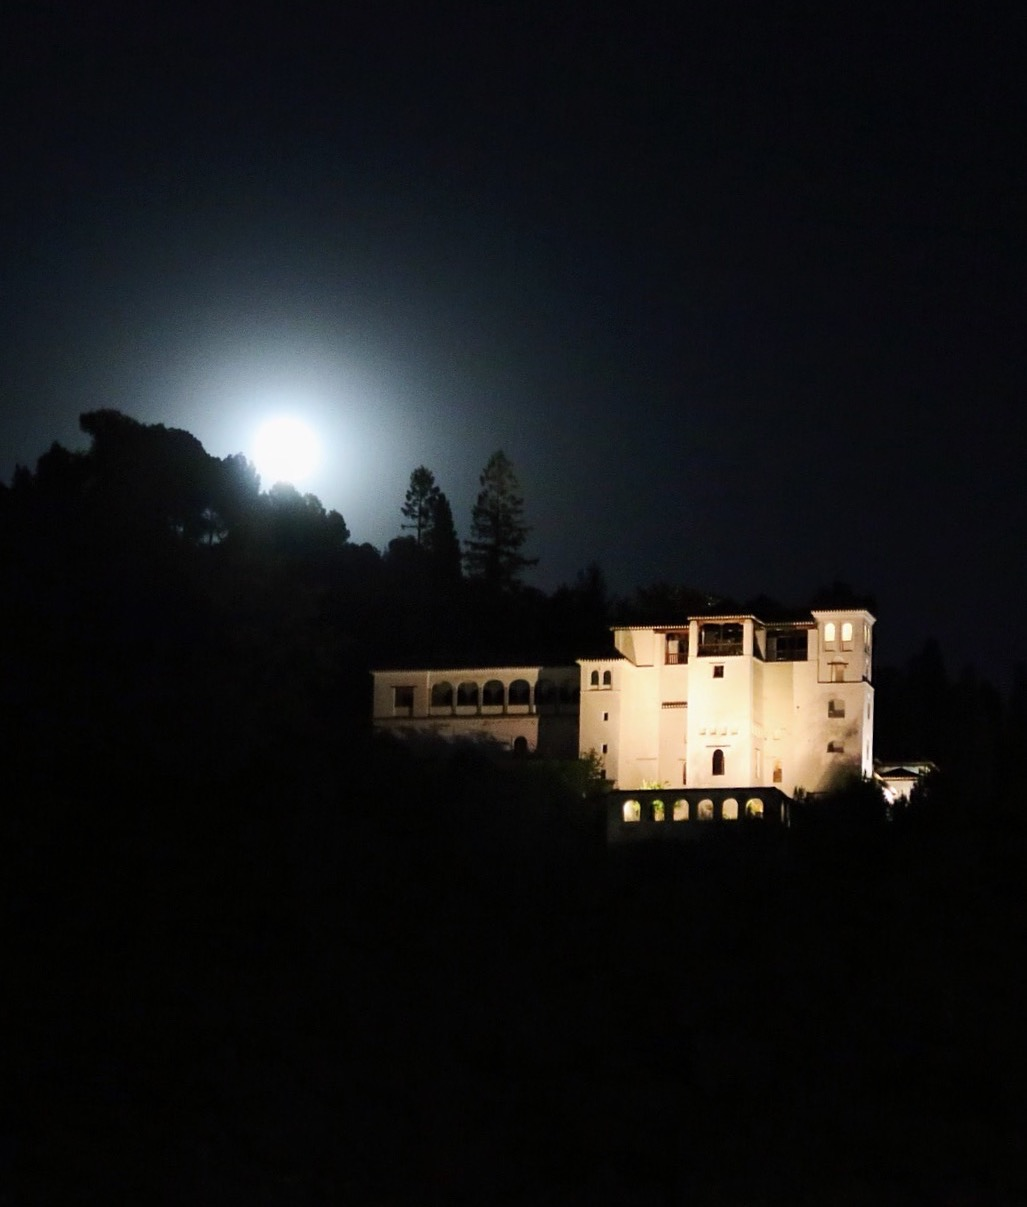 THE FULL MOON ON THE FIRST DAY OF SUMMER SOLSTICE ADDING TO THE MAGIC